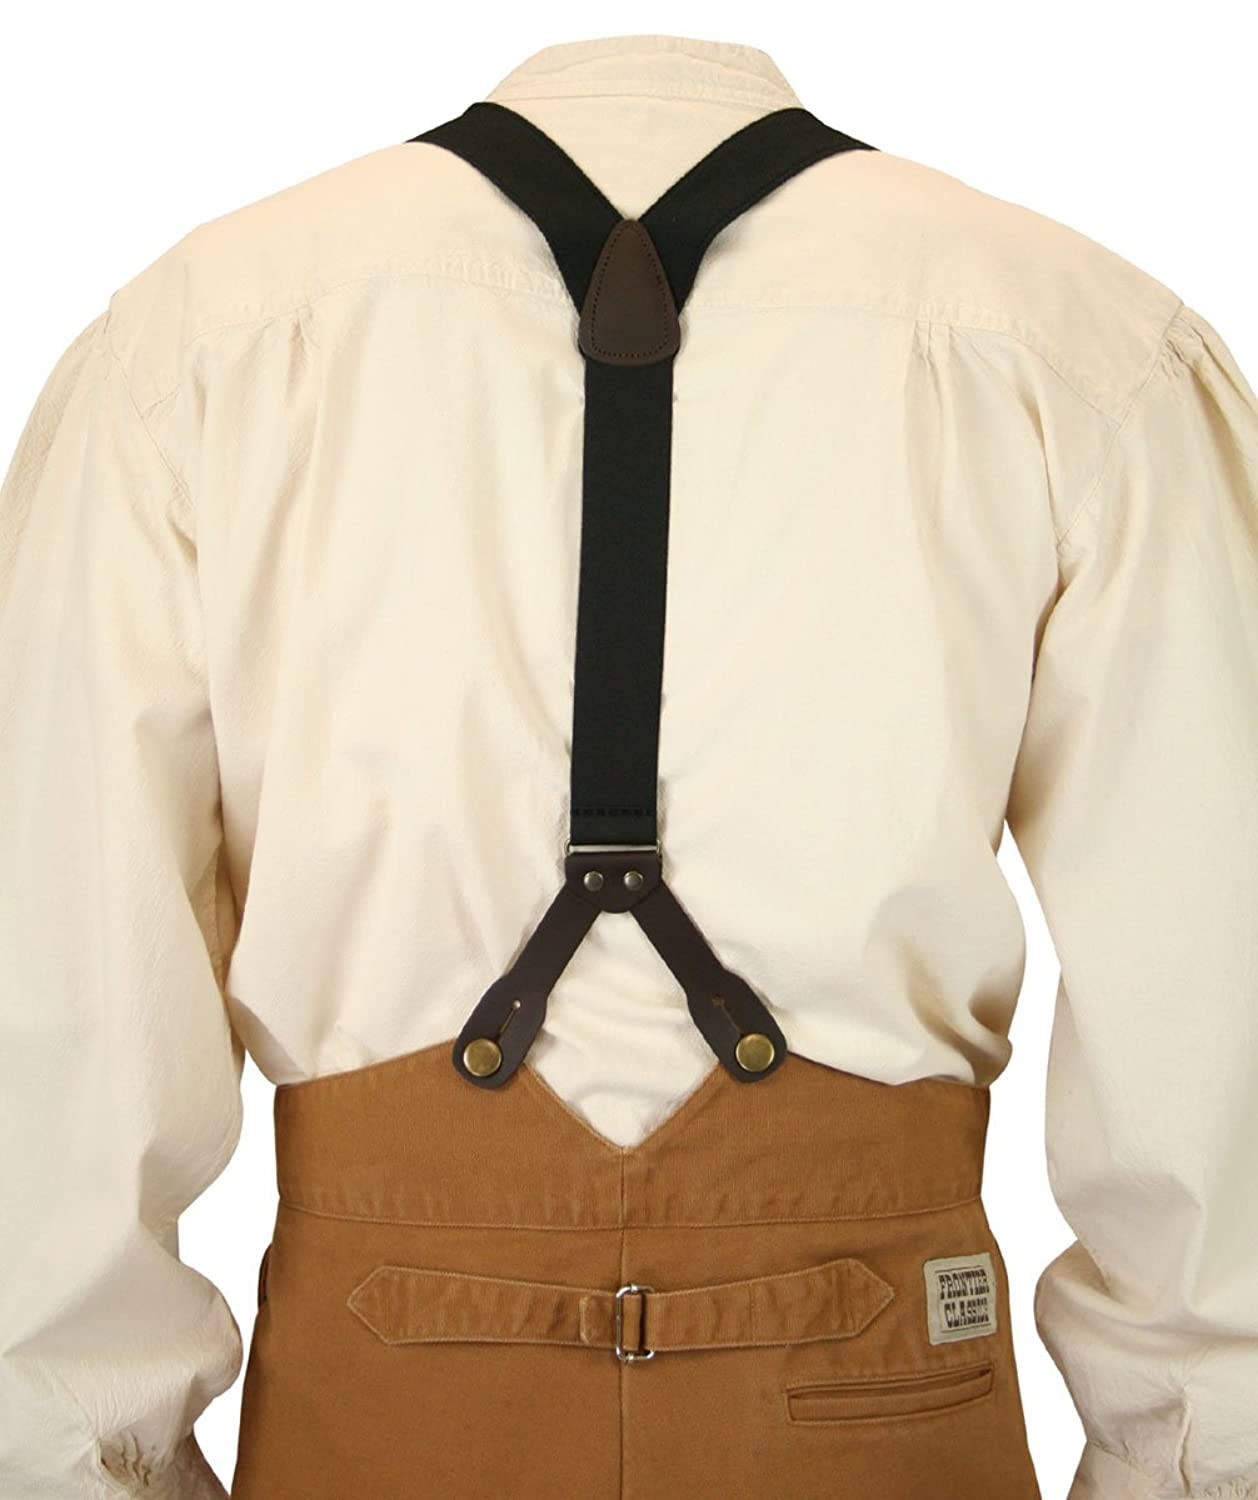 Men's Vintage Pants, Trousers, Jeans, Overalls Historical Emporium Mens Canvas Stagecoach Y-Back Suspenders $27.95 AT vintagedancer.com